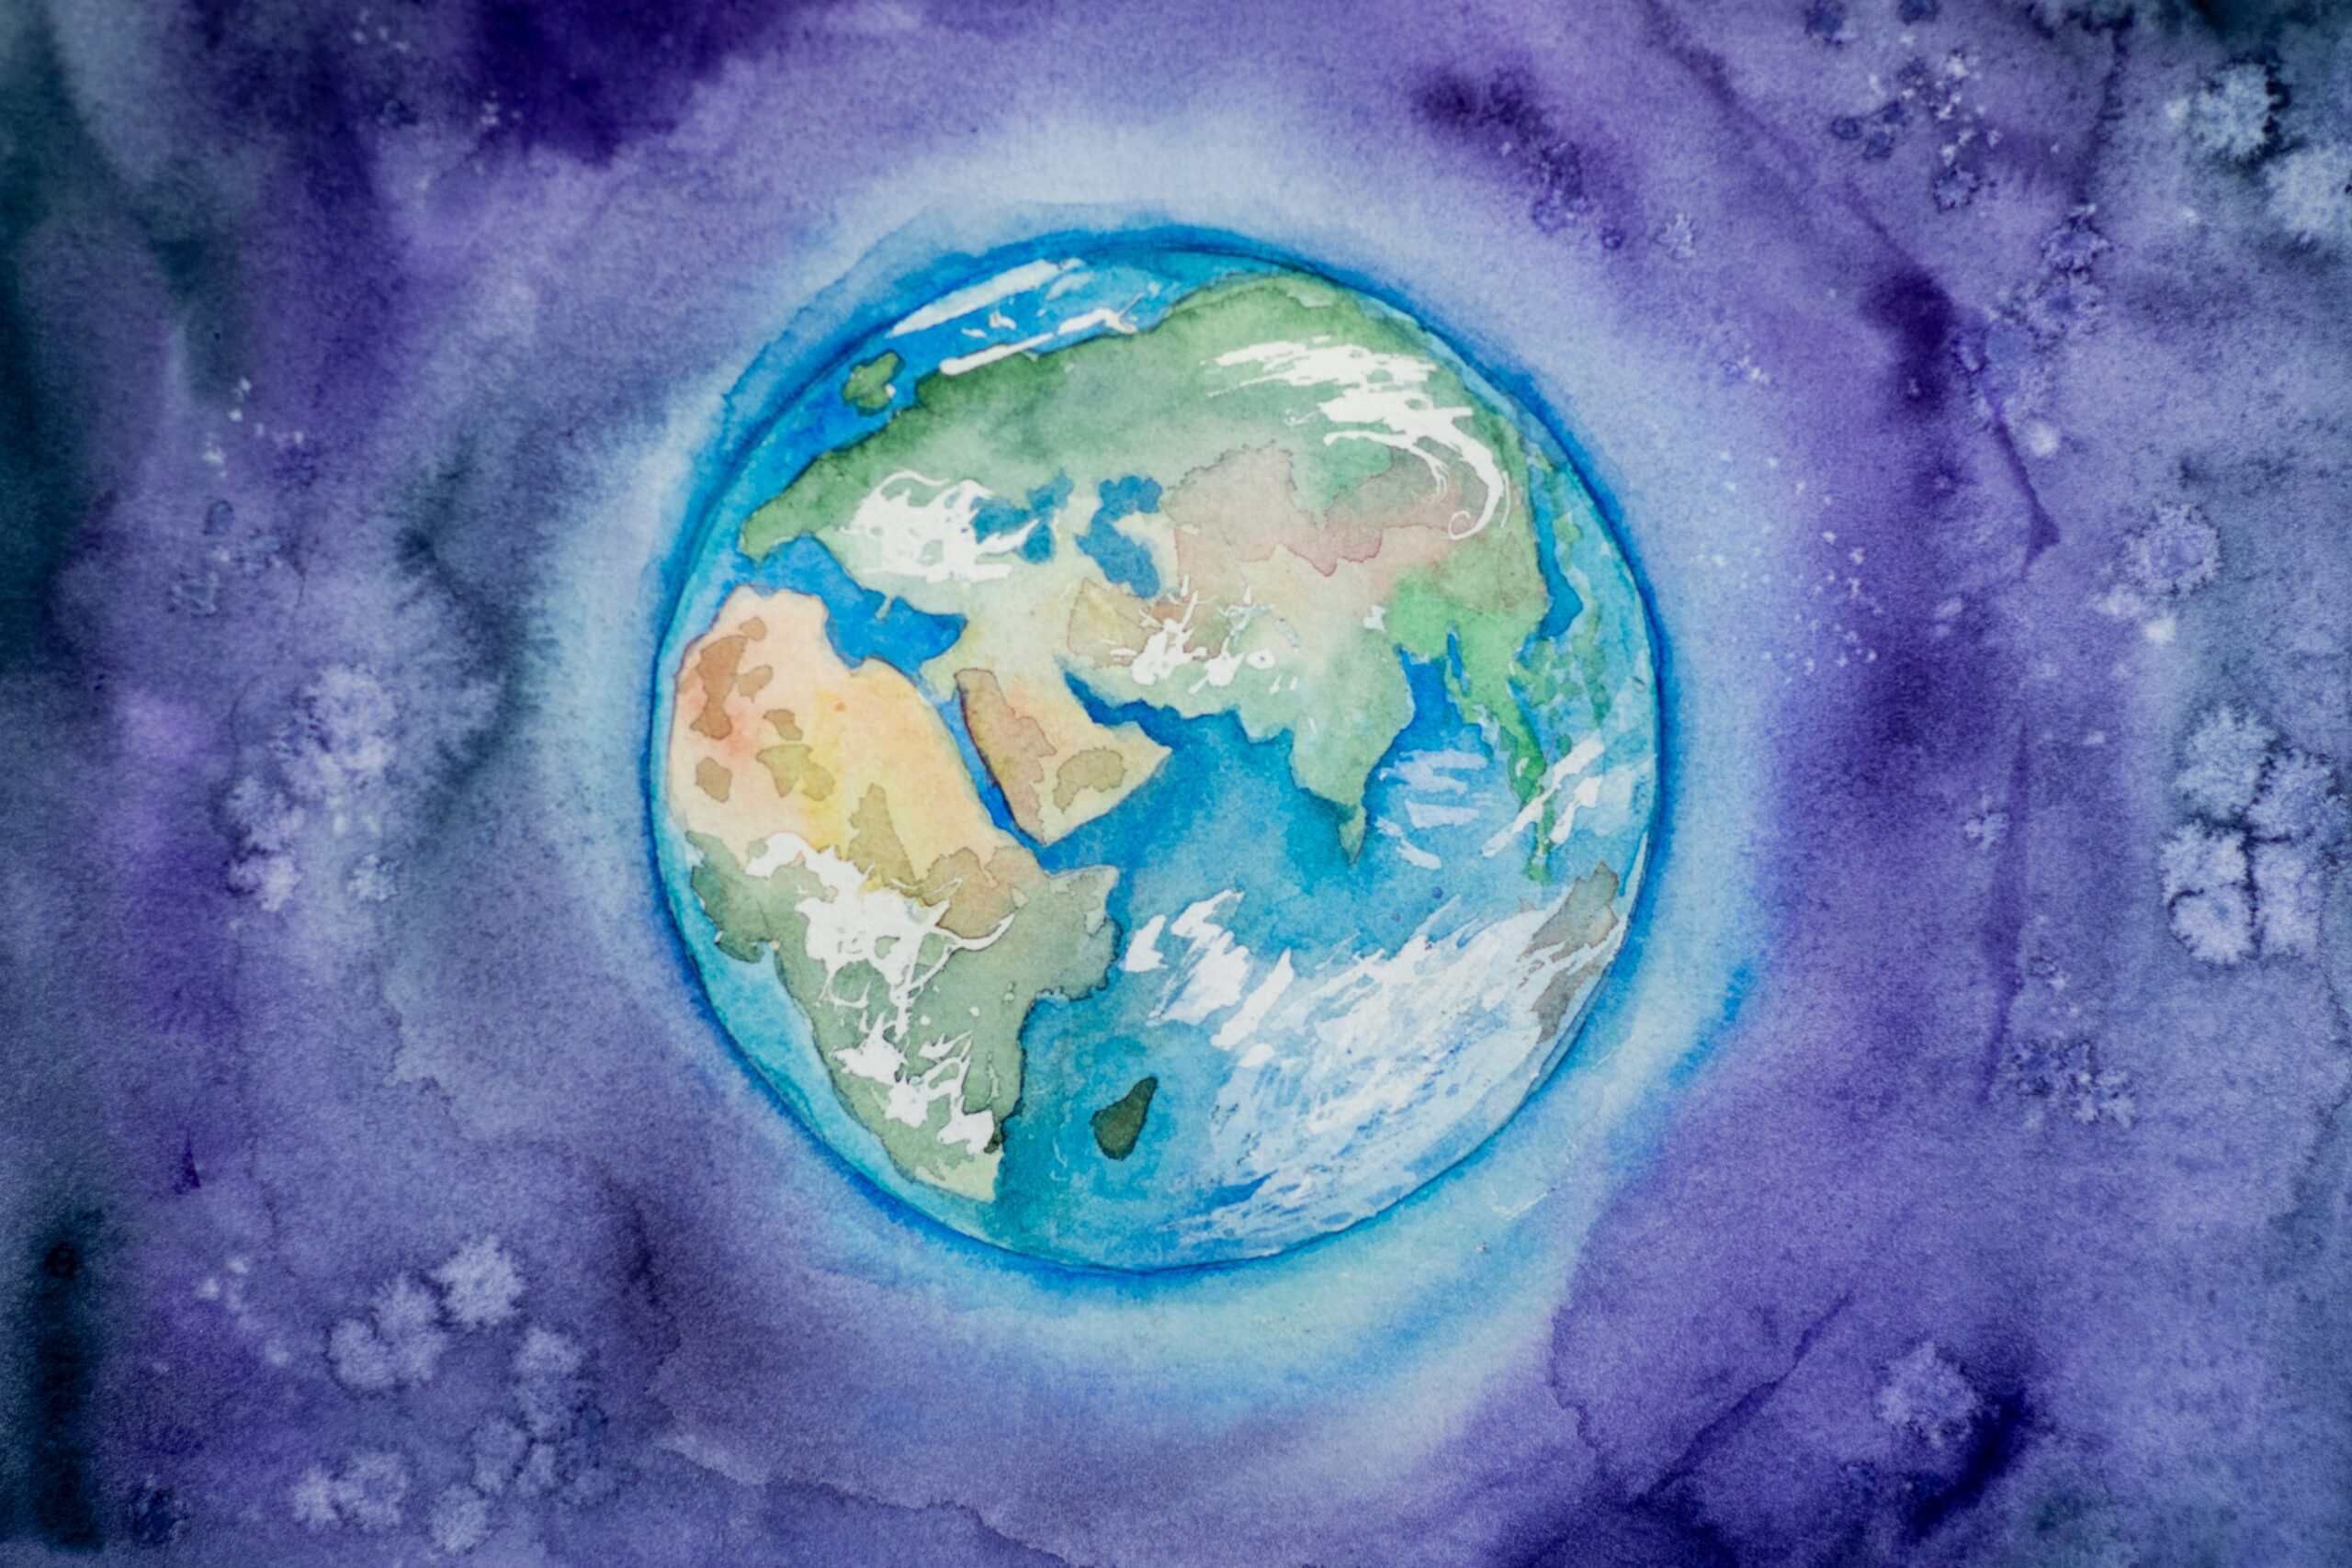 Our earth - illustration by Elena Mozhvilo